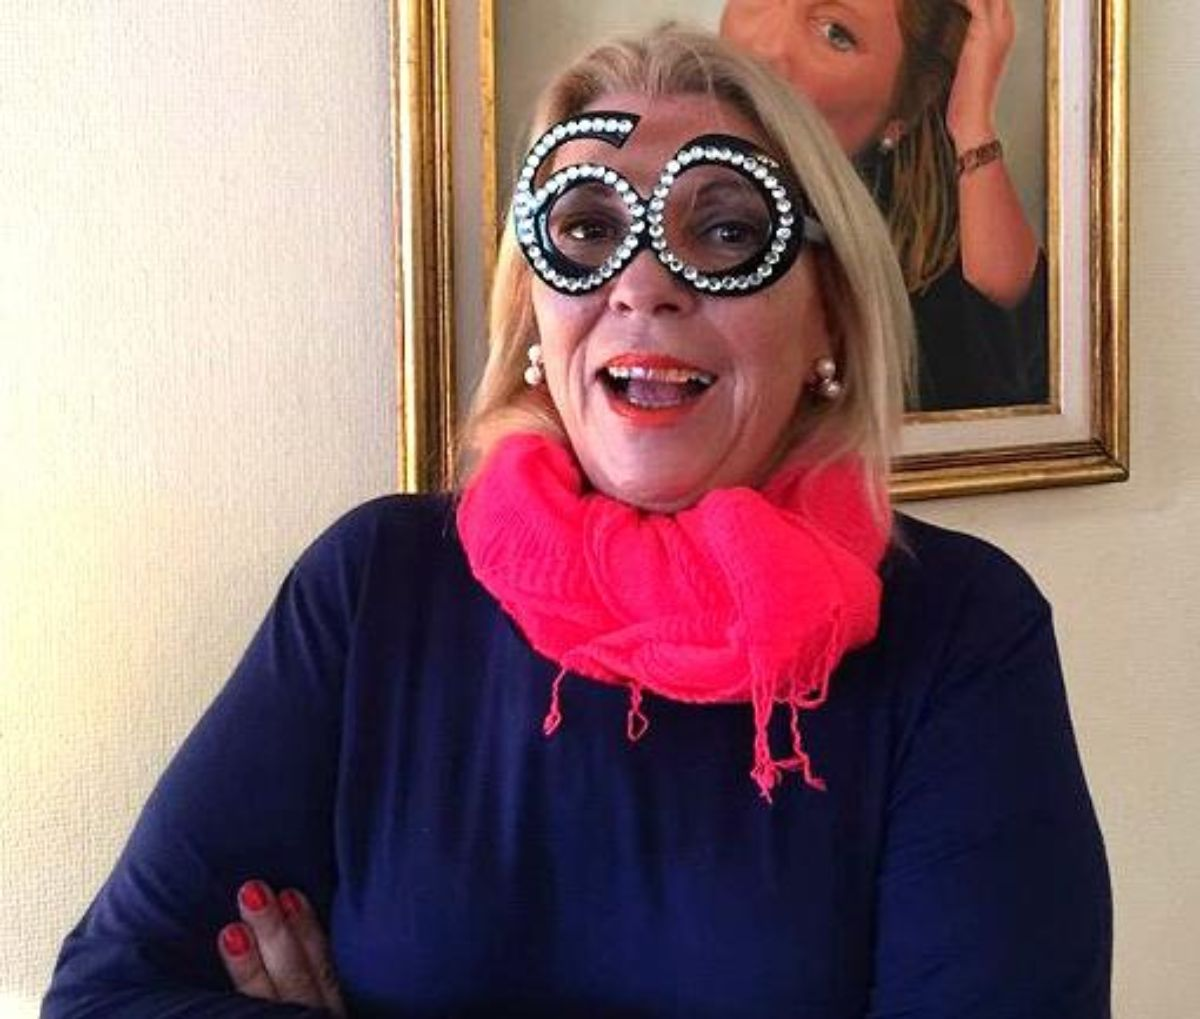 0706_carrio_elecciones_capital_lousteau_g_1853027552_crop1439513634781-jpg_1019775938